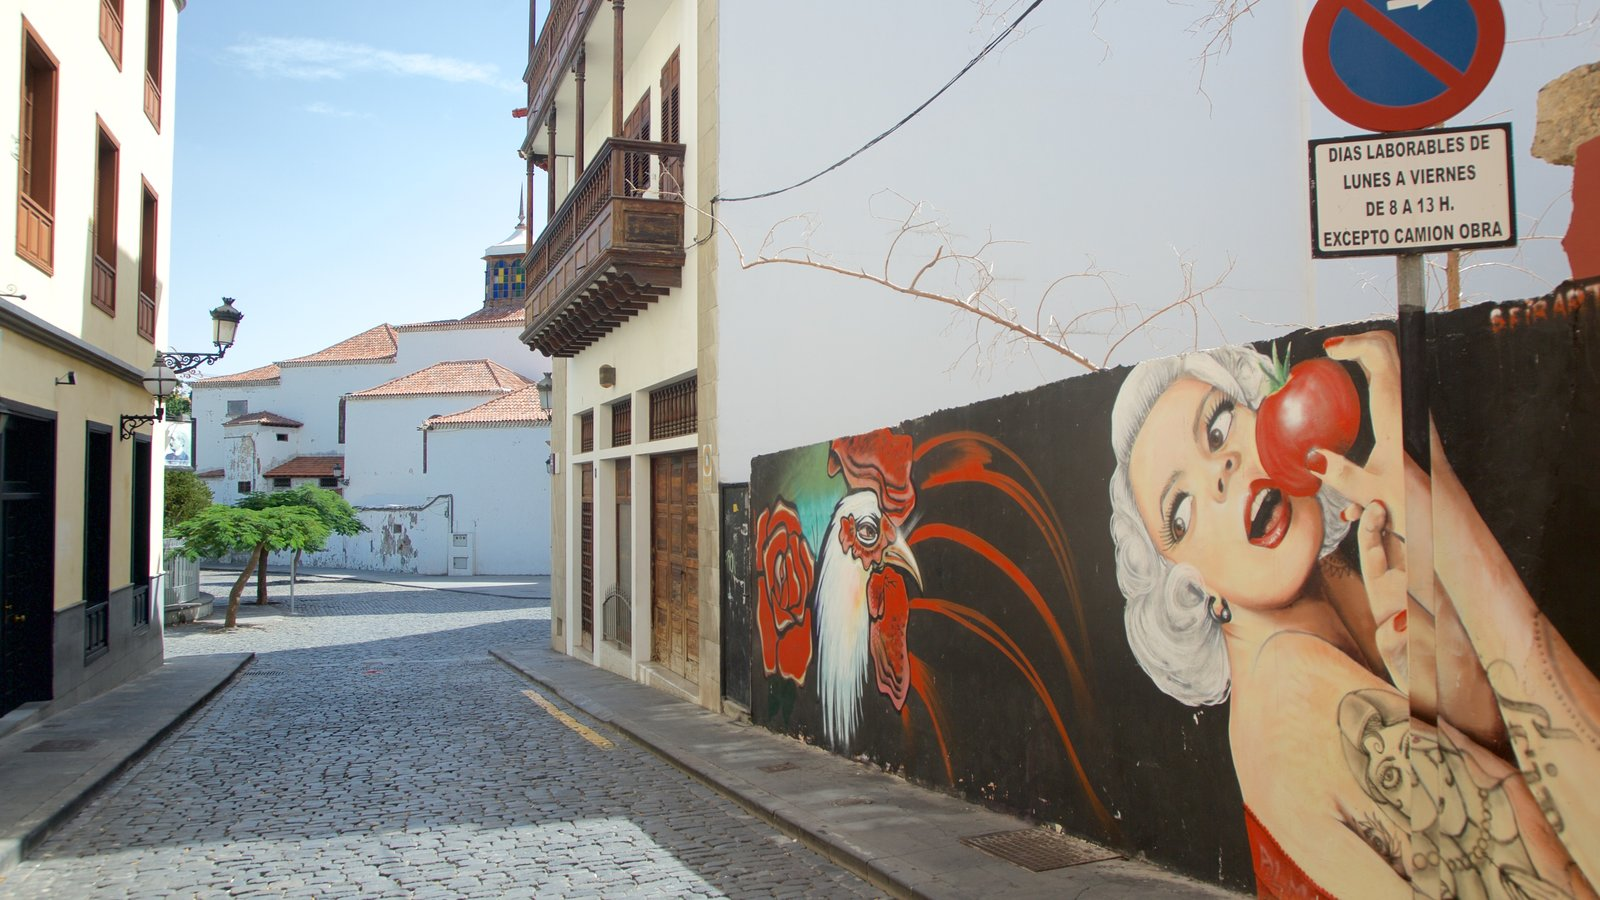 Santa Cruz de Tenerife which includes art and outdoor art